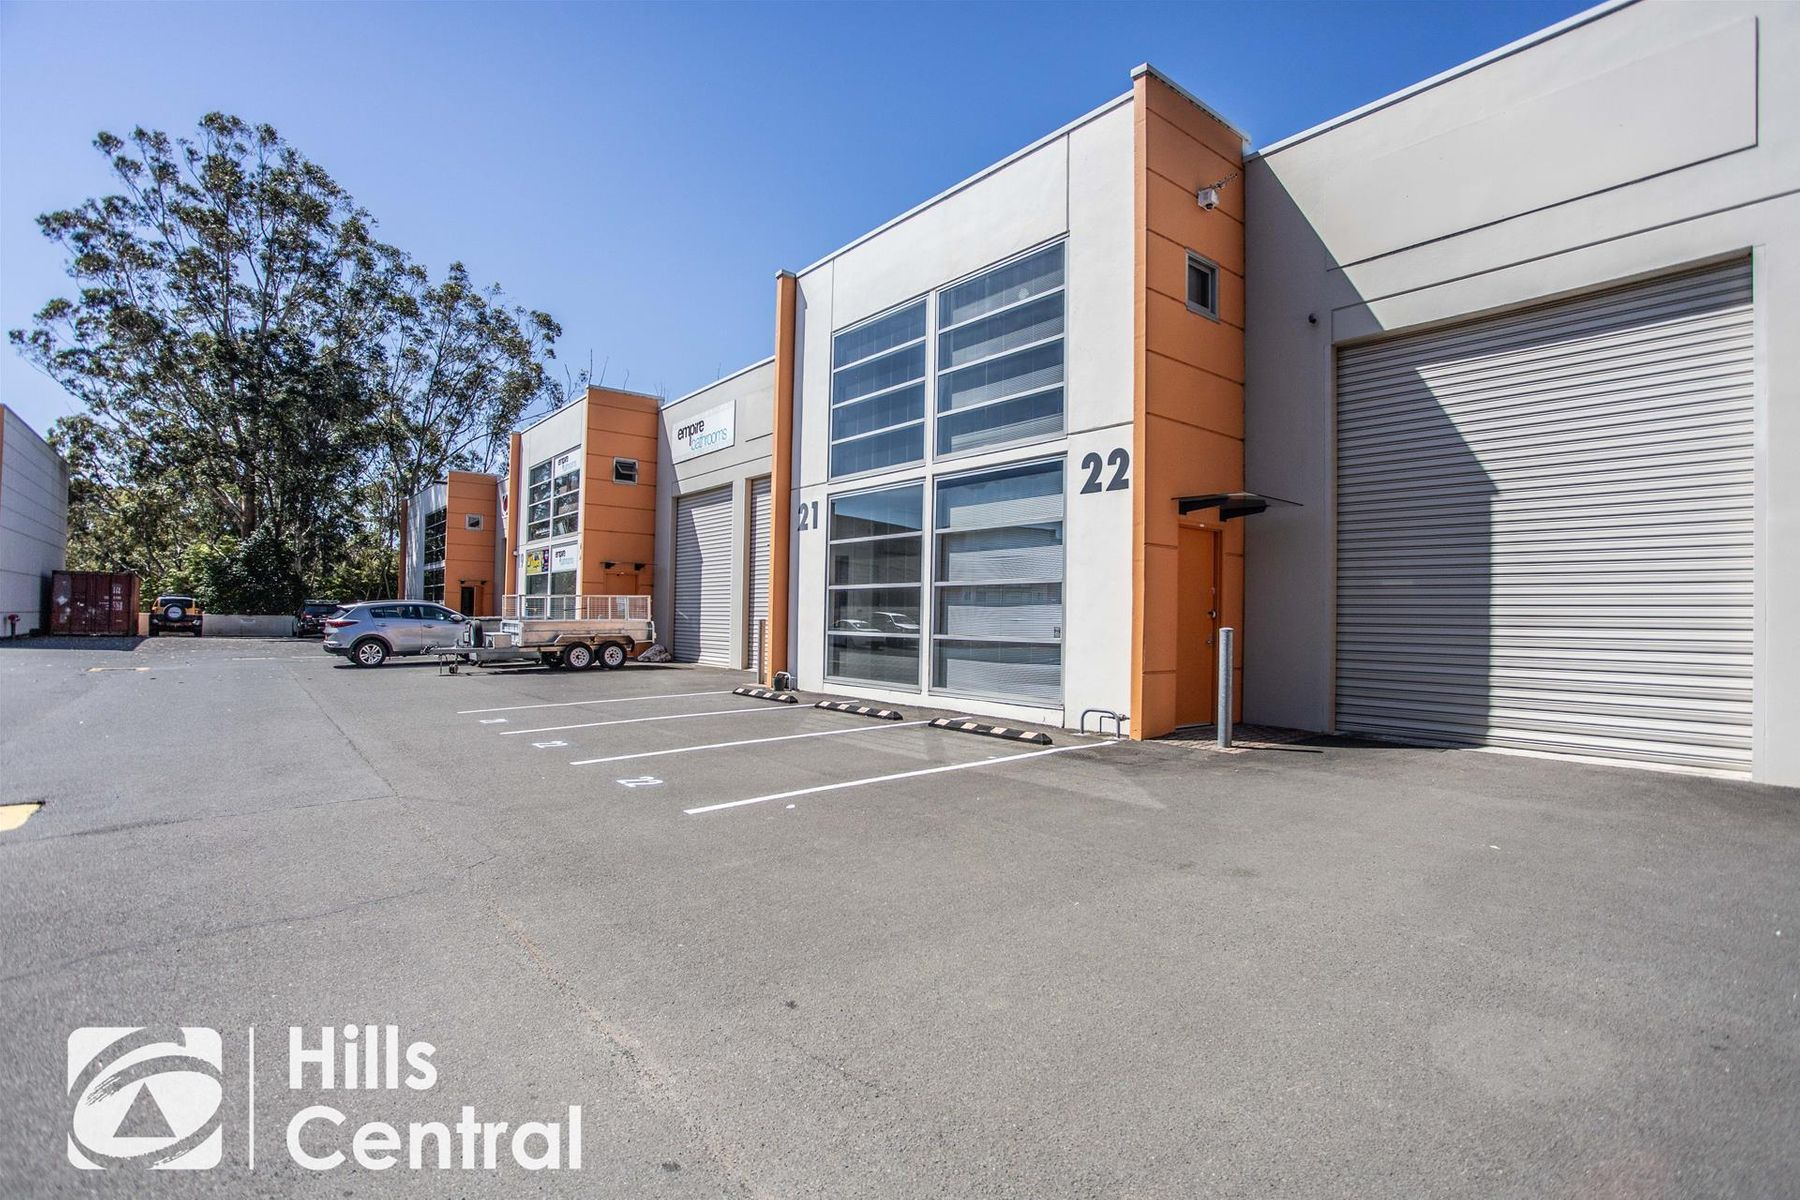 22/252 New Line Road, Dural, NSW 2158